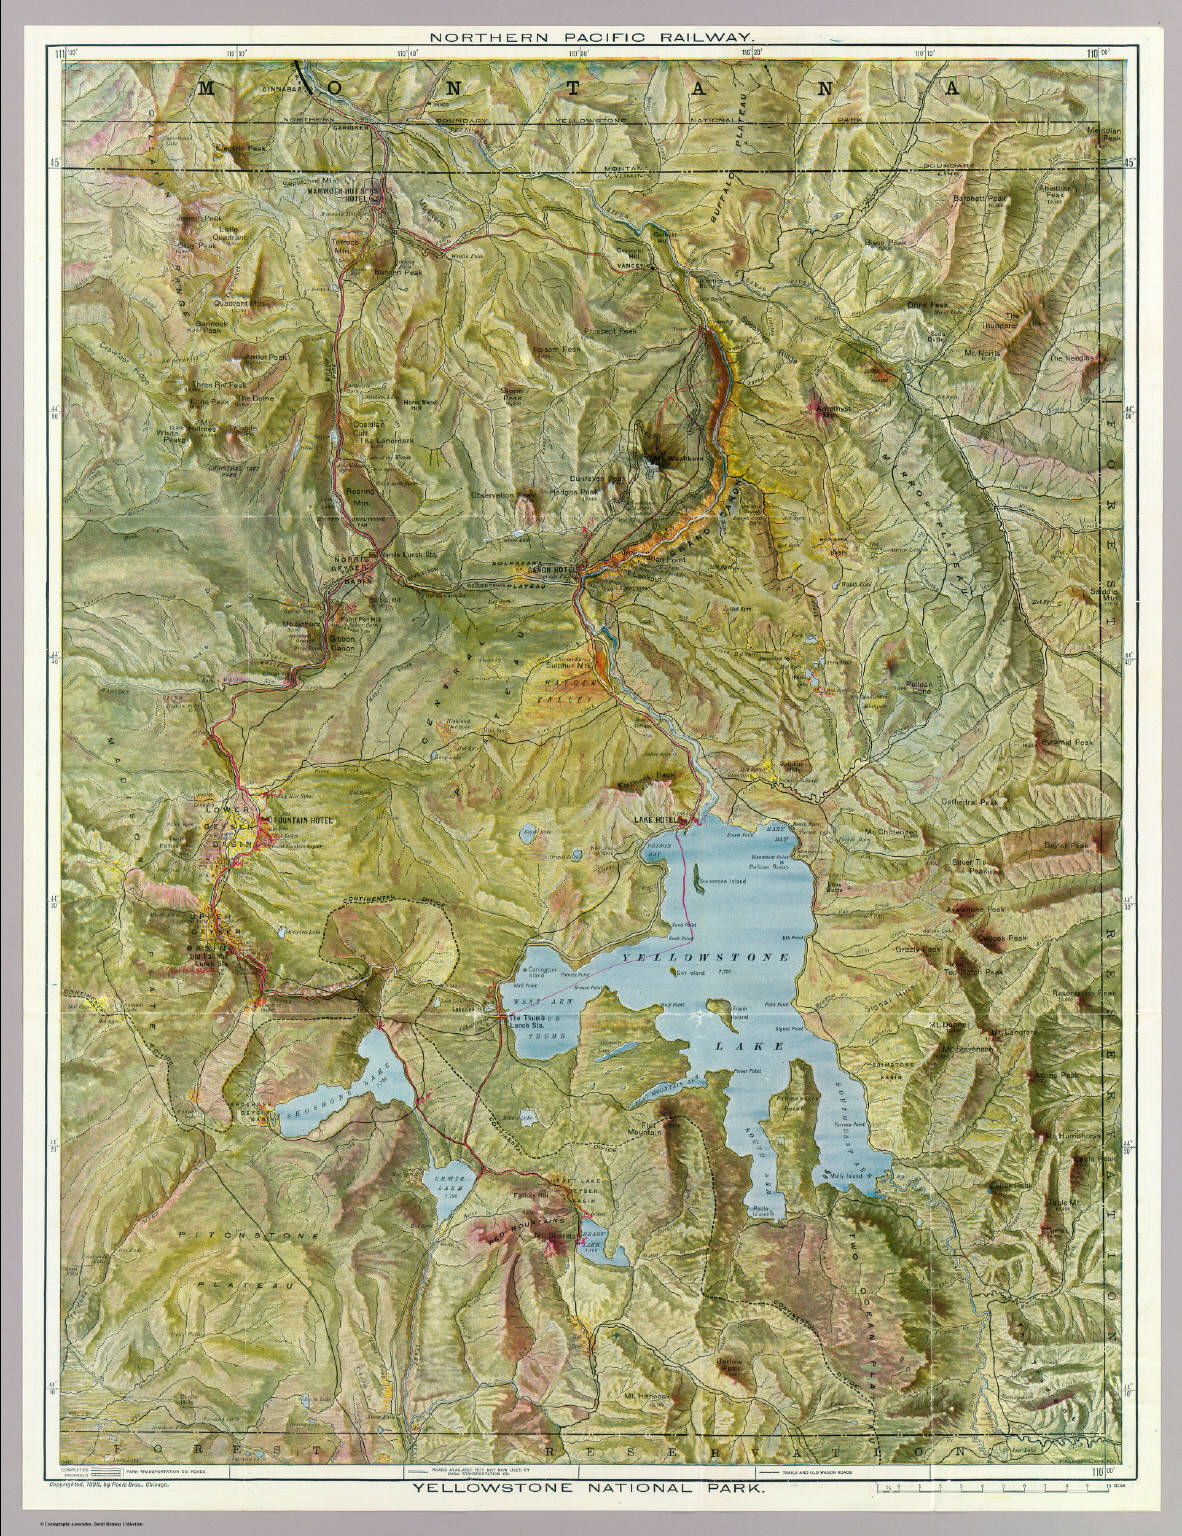 Yellowstone National Park. - David Rumsey Historical Map Collection